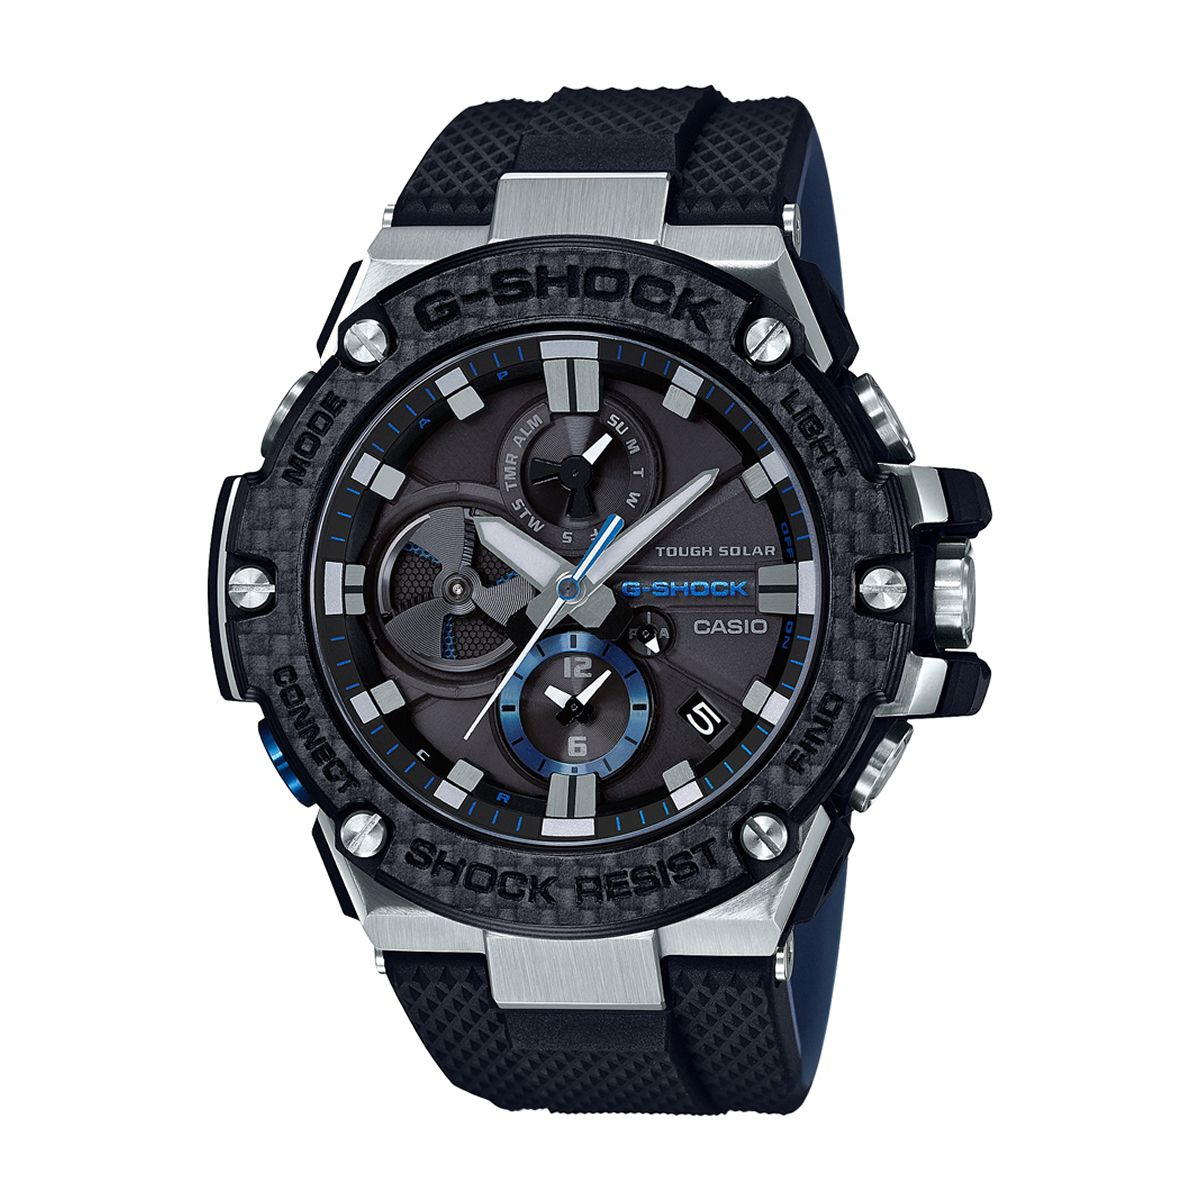 63cfd06039d G-Shock Watches - Macy s